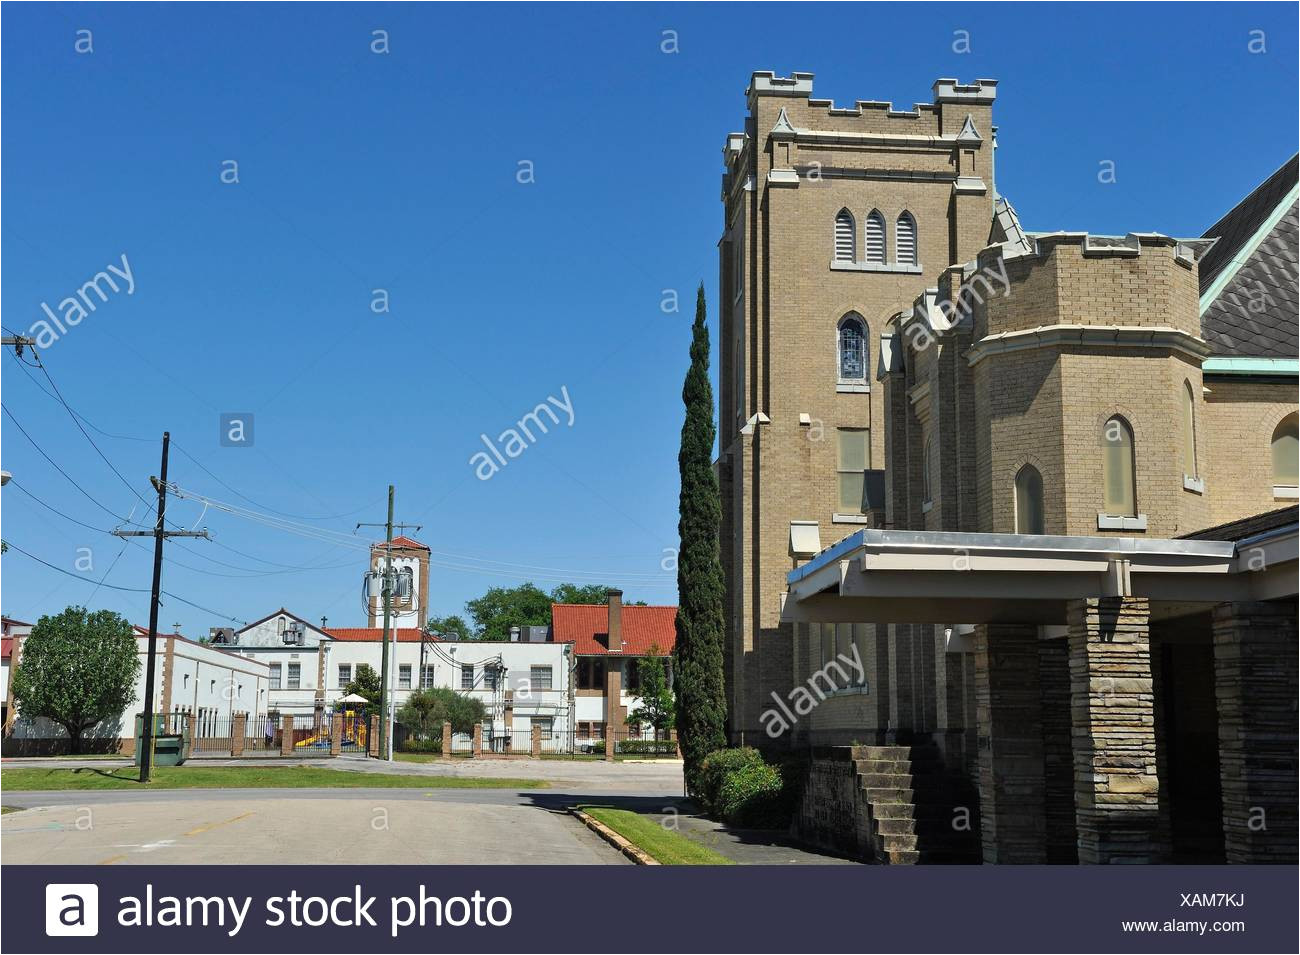 downtown beaumont texas united states of america north america stock image